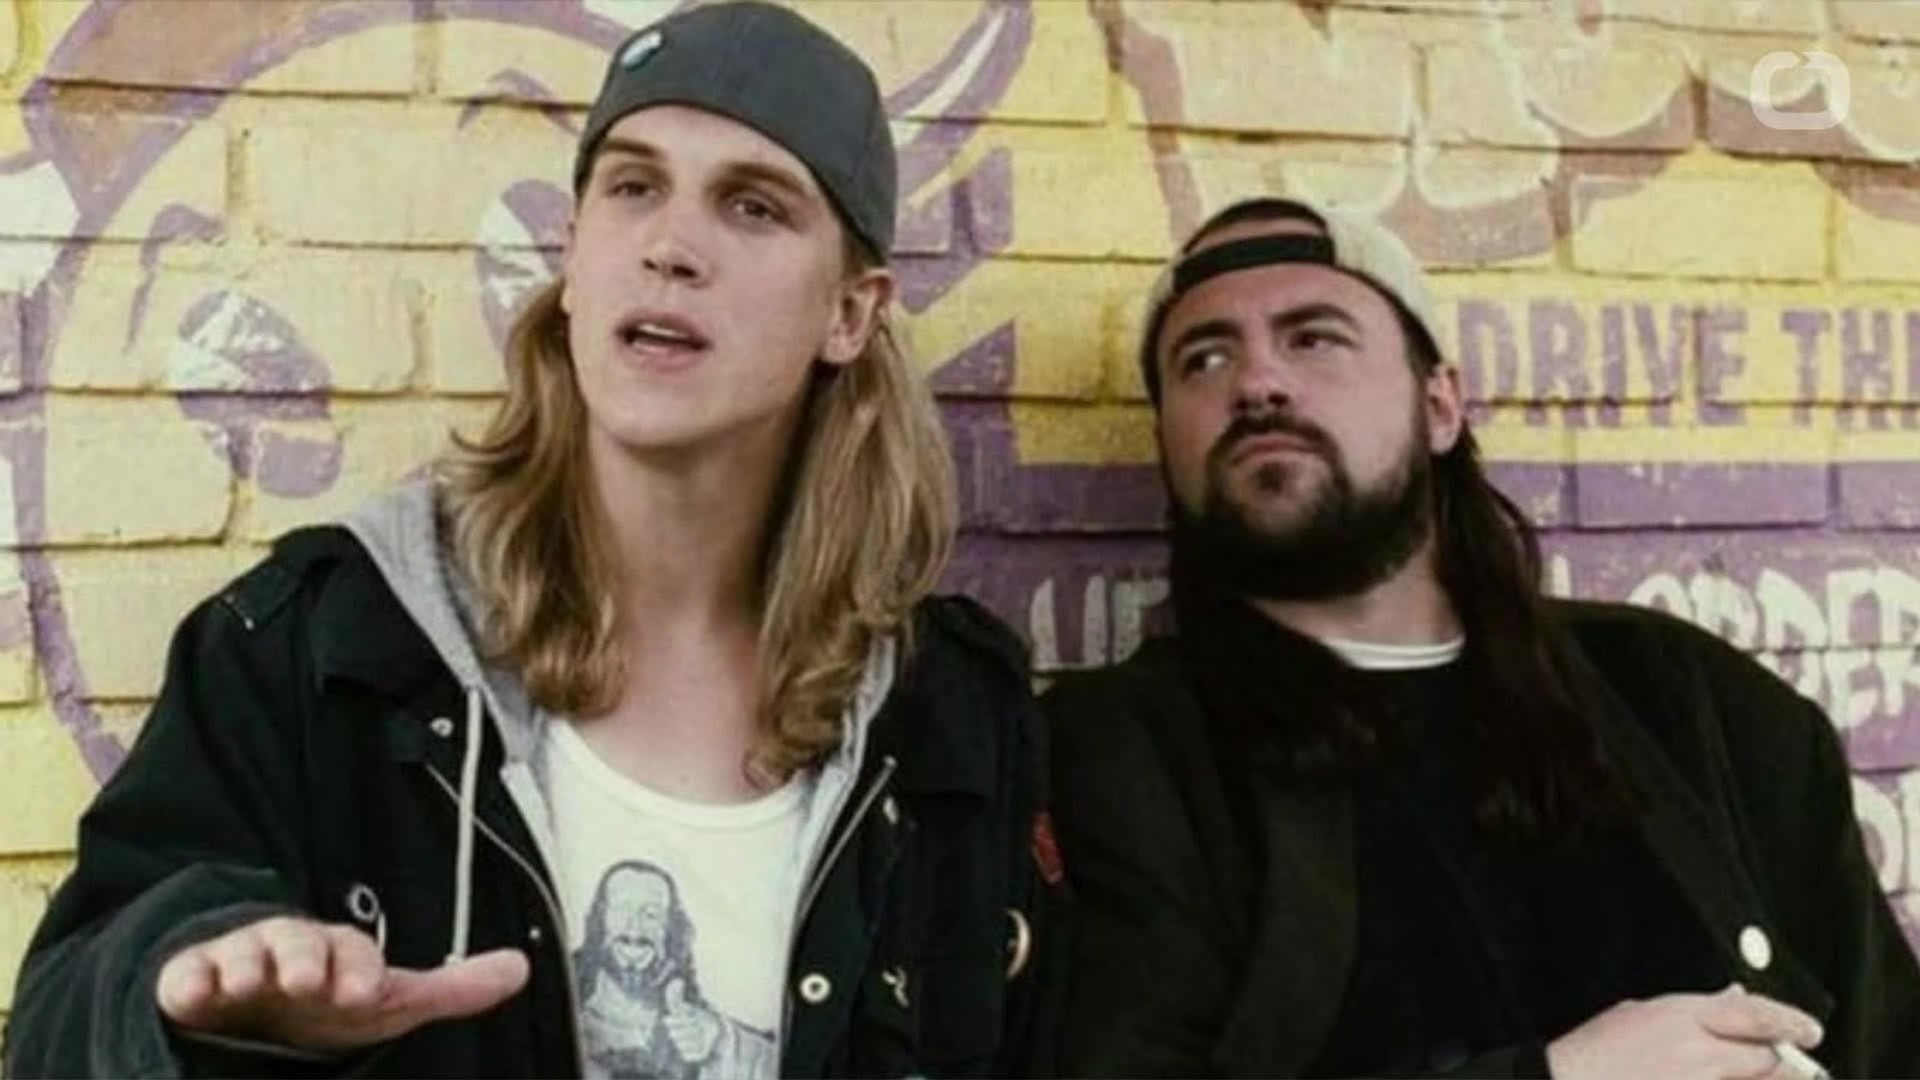 1920x1080 Kevin Smith Adds WuTang Clan To 'Jay and Silent Bob Reboot'